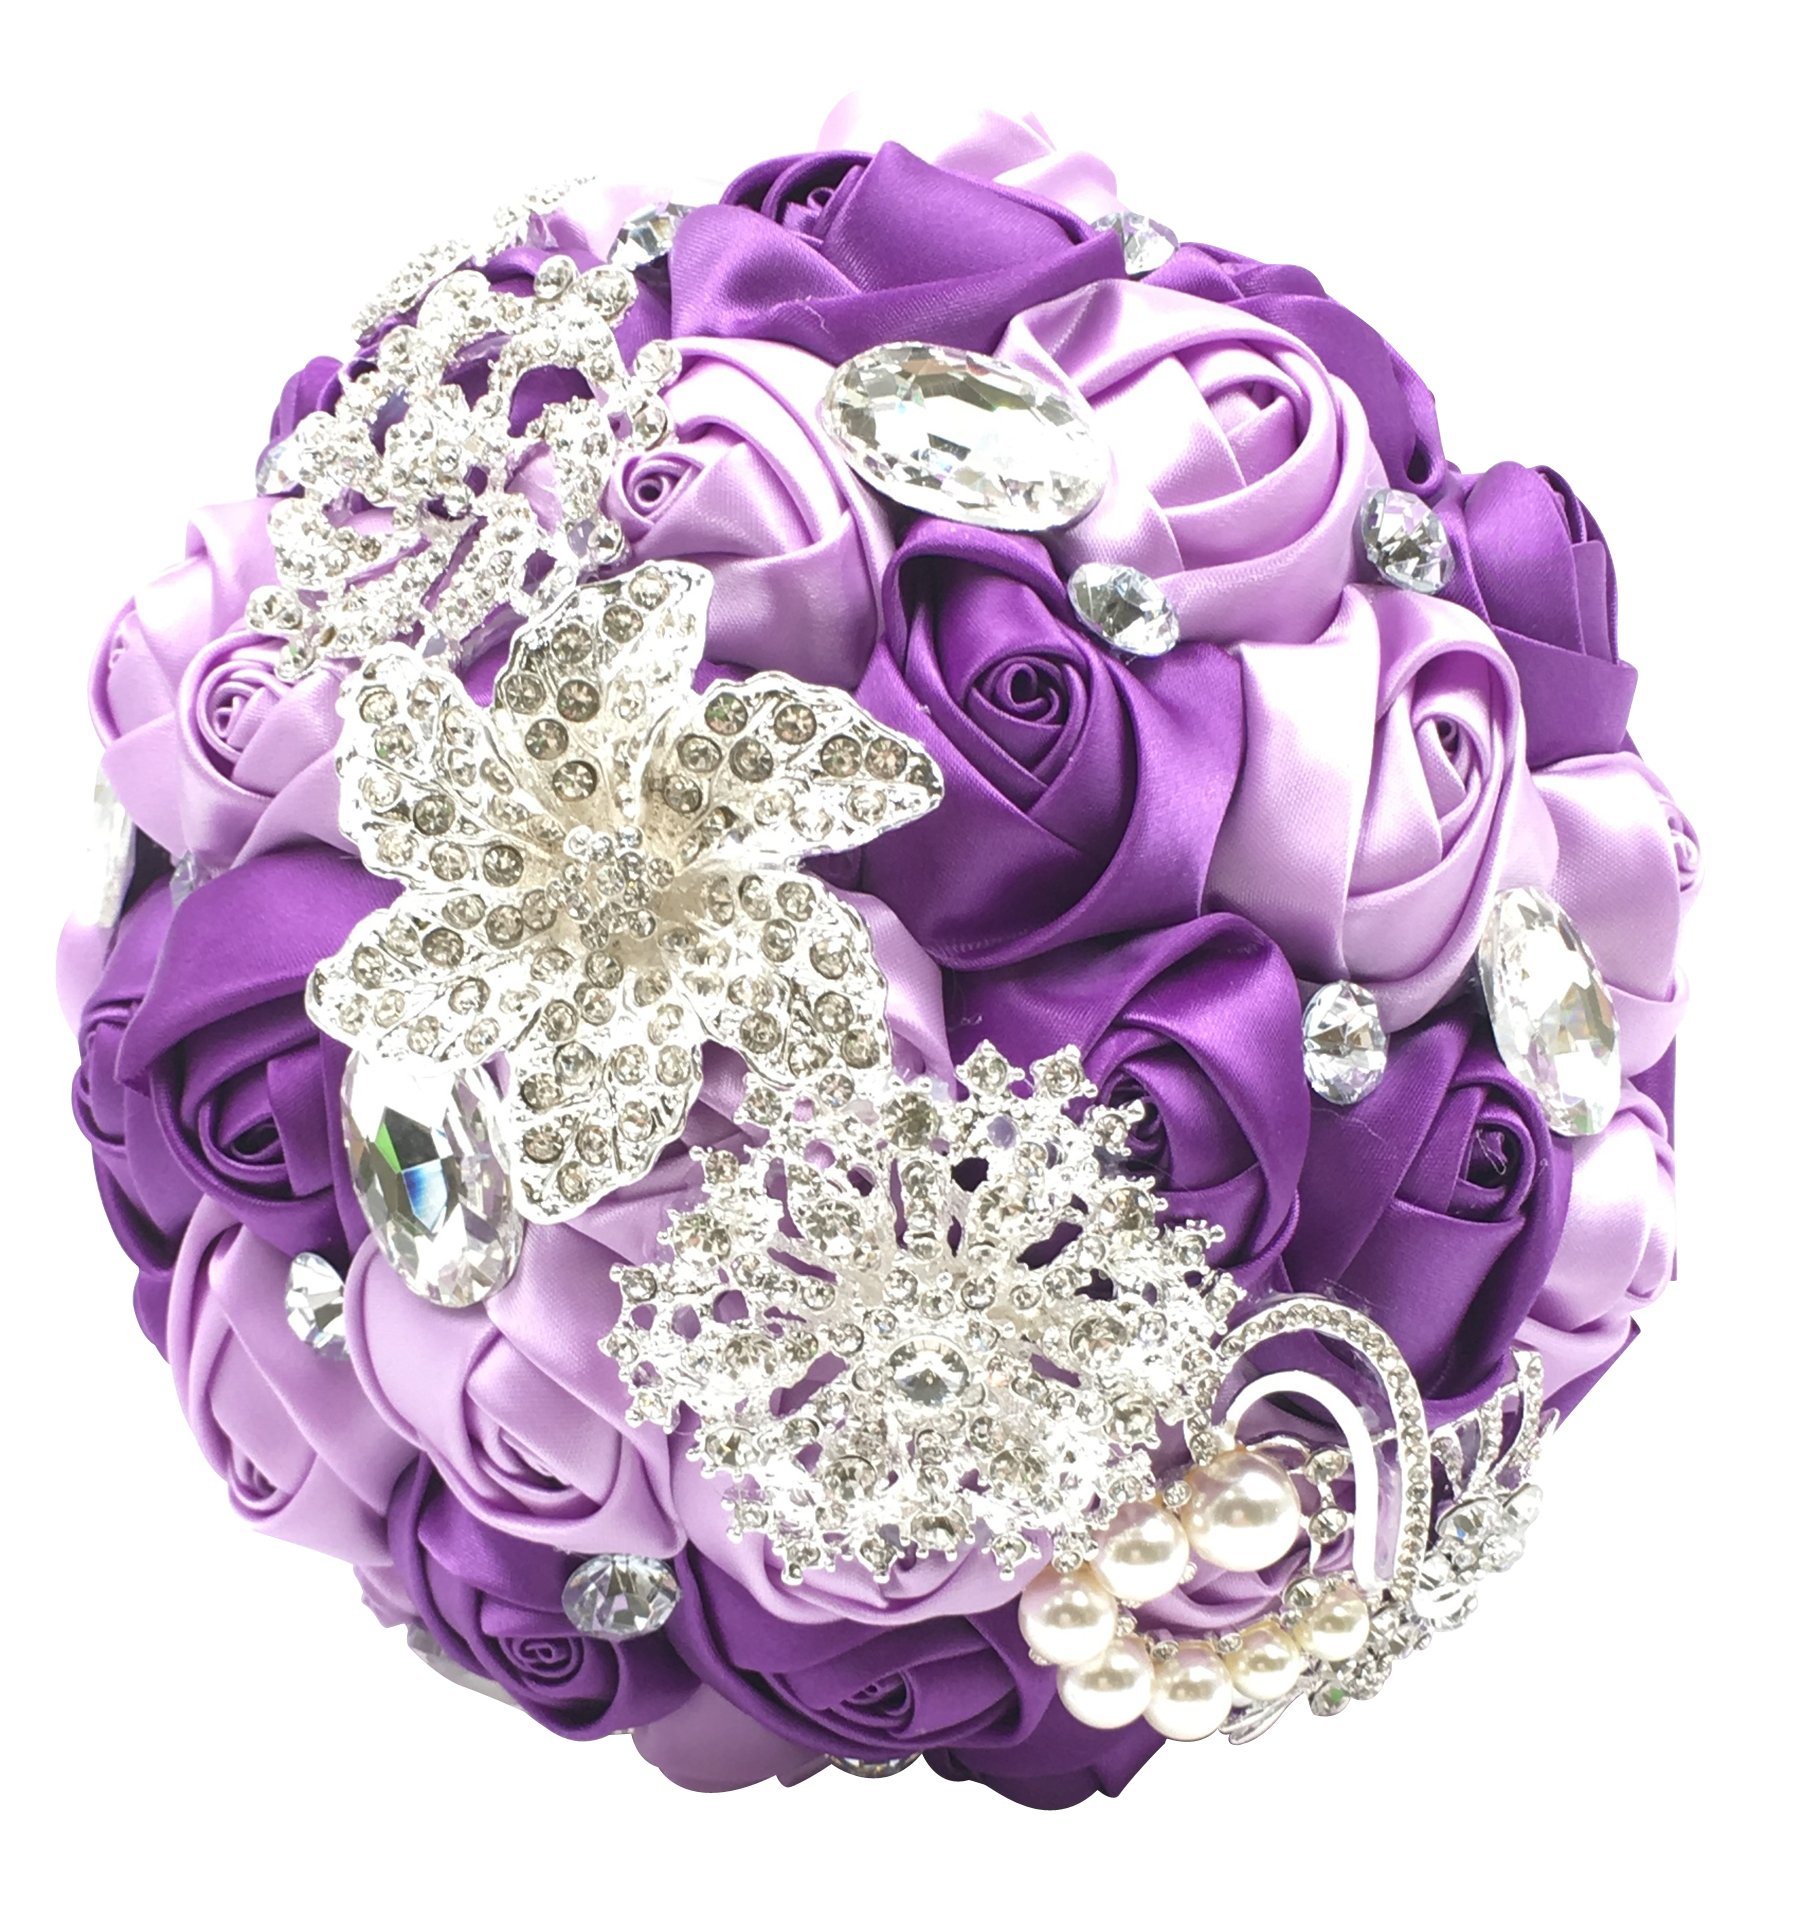 silk flower arrangements abbie home advanced customization romantic bride wedding holding toss bouquet rose brooch with pearls and rhinestone decorative brooches accessories-multi color selection (336pu)